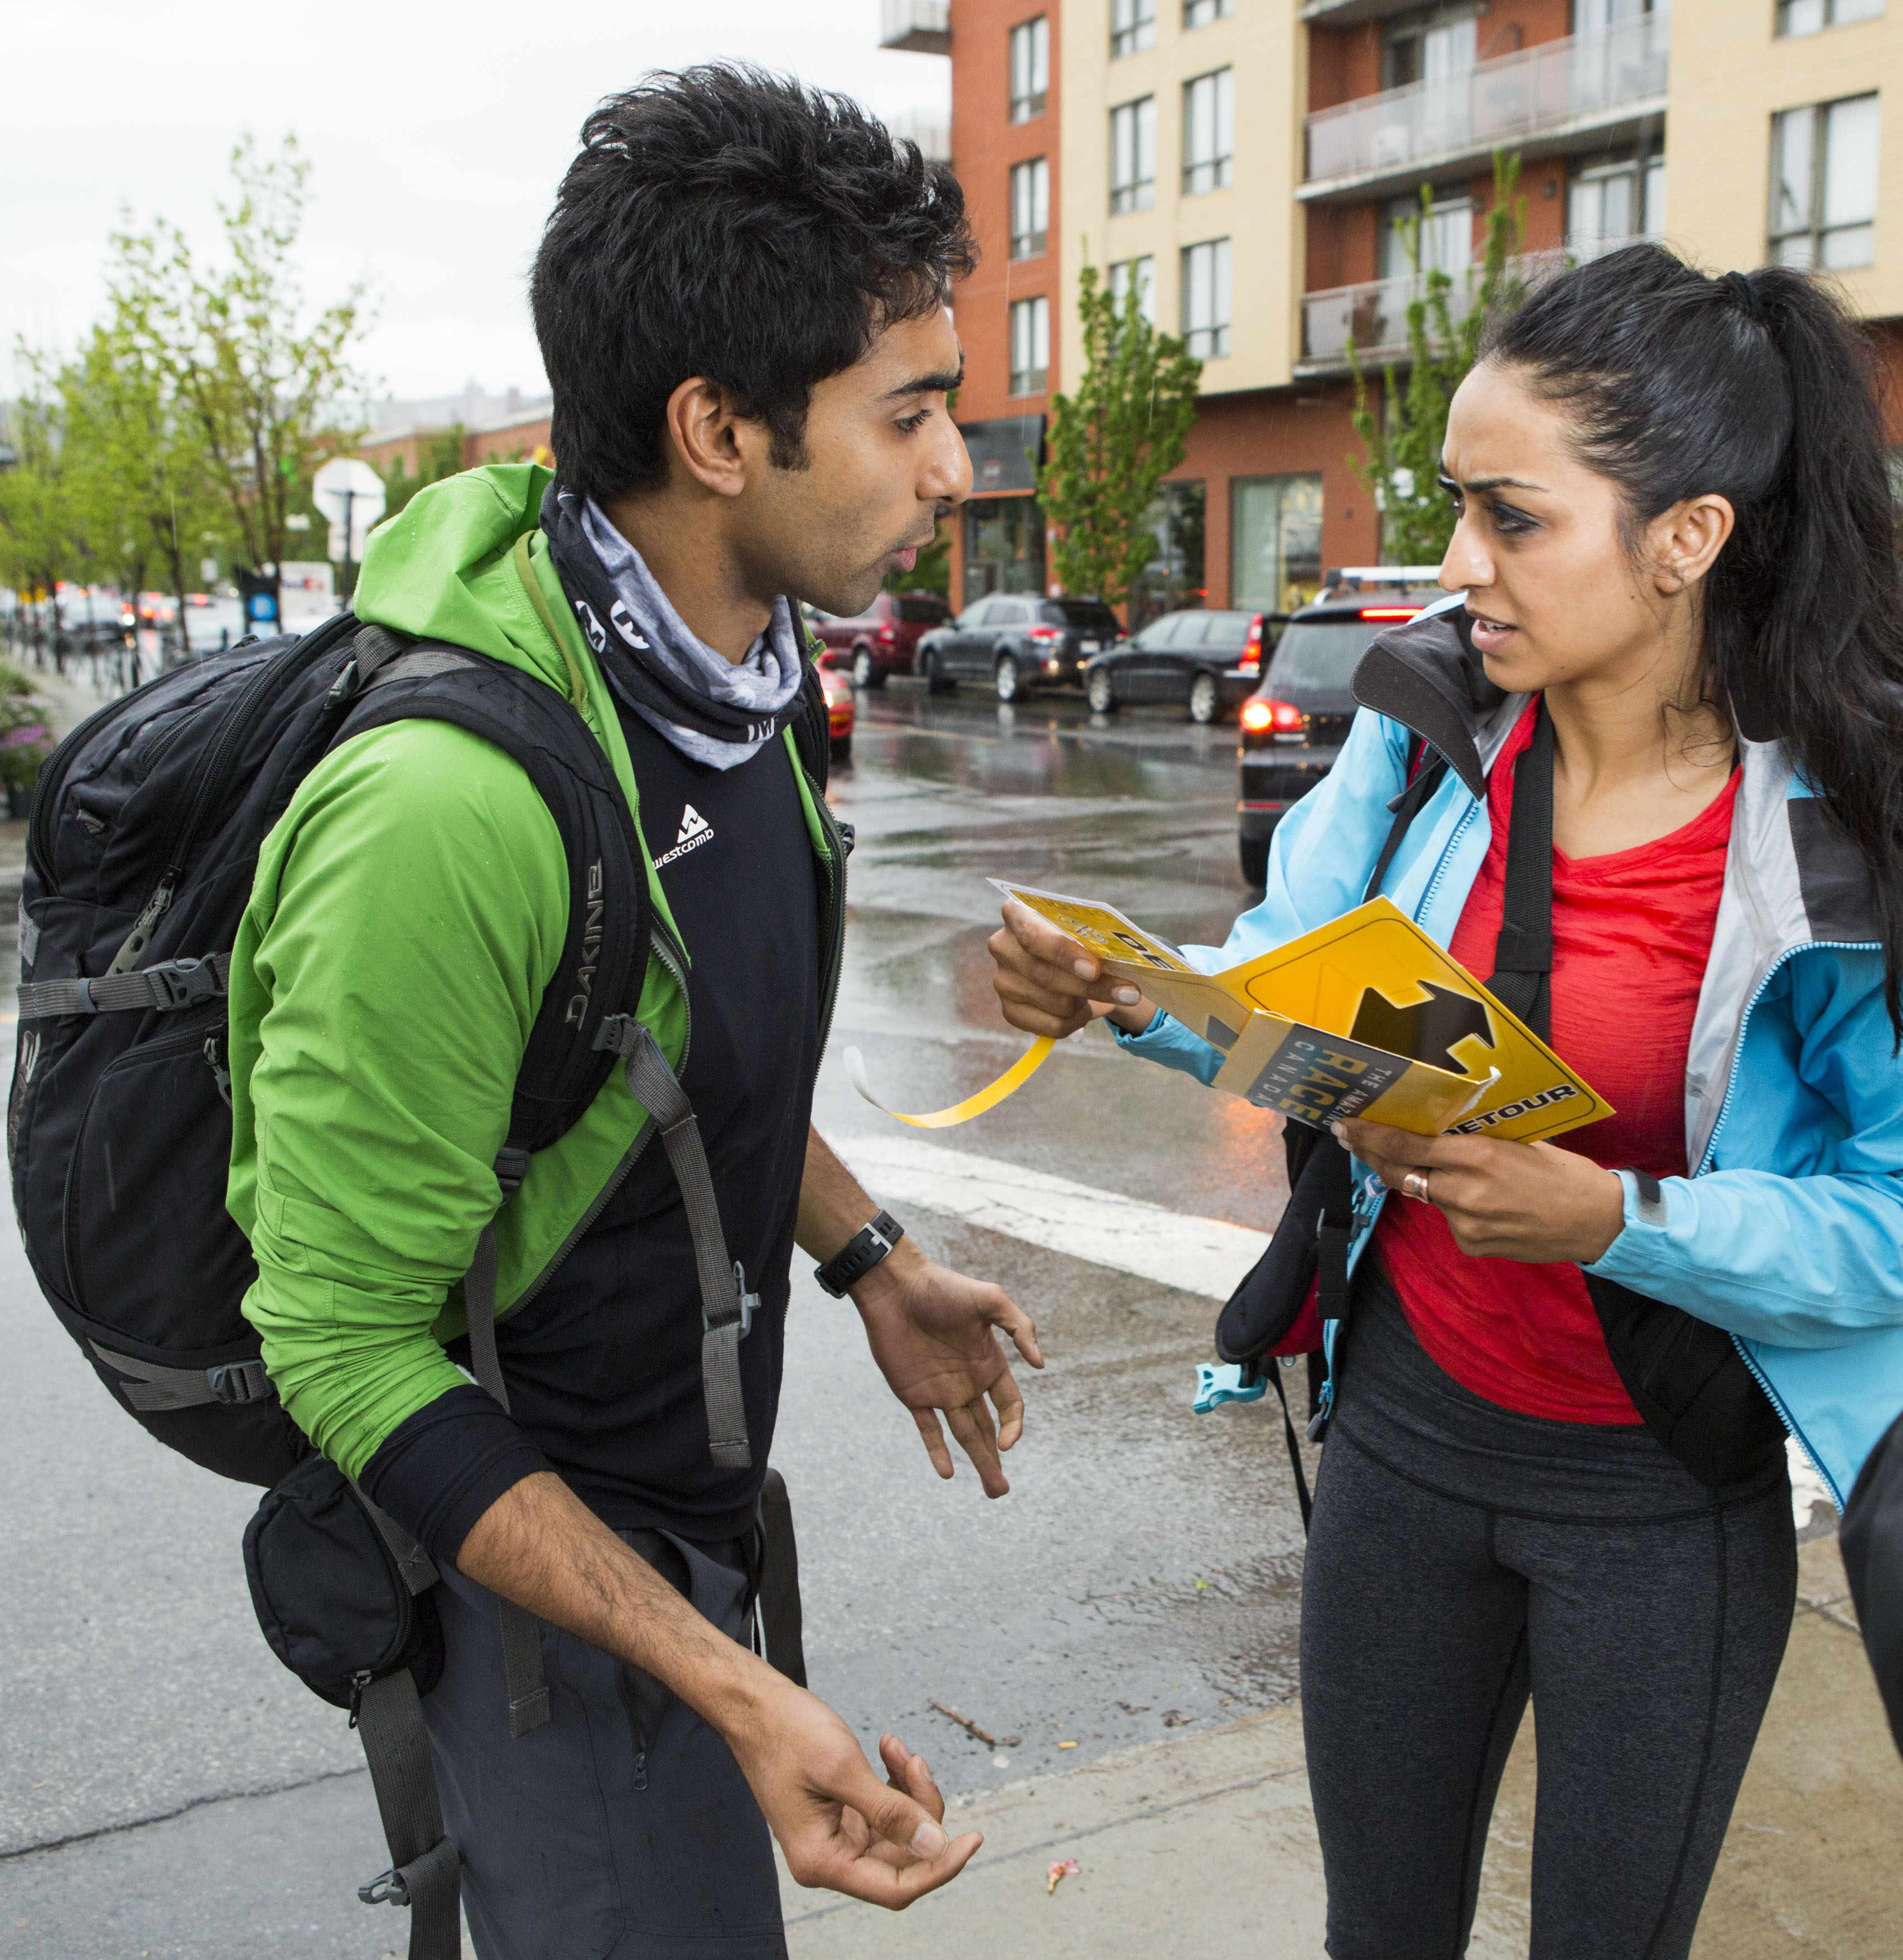 Jinder-and-Sukhi-discuss-their-options-Atwater-Market-Route-Marker